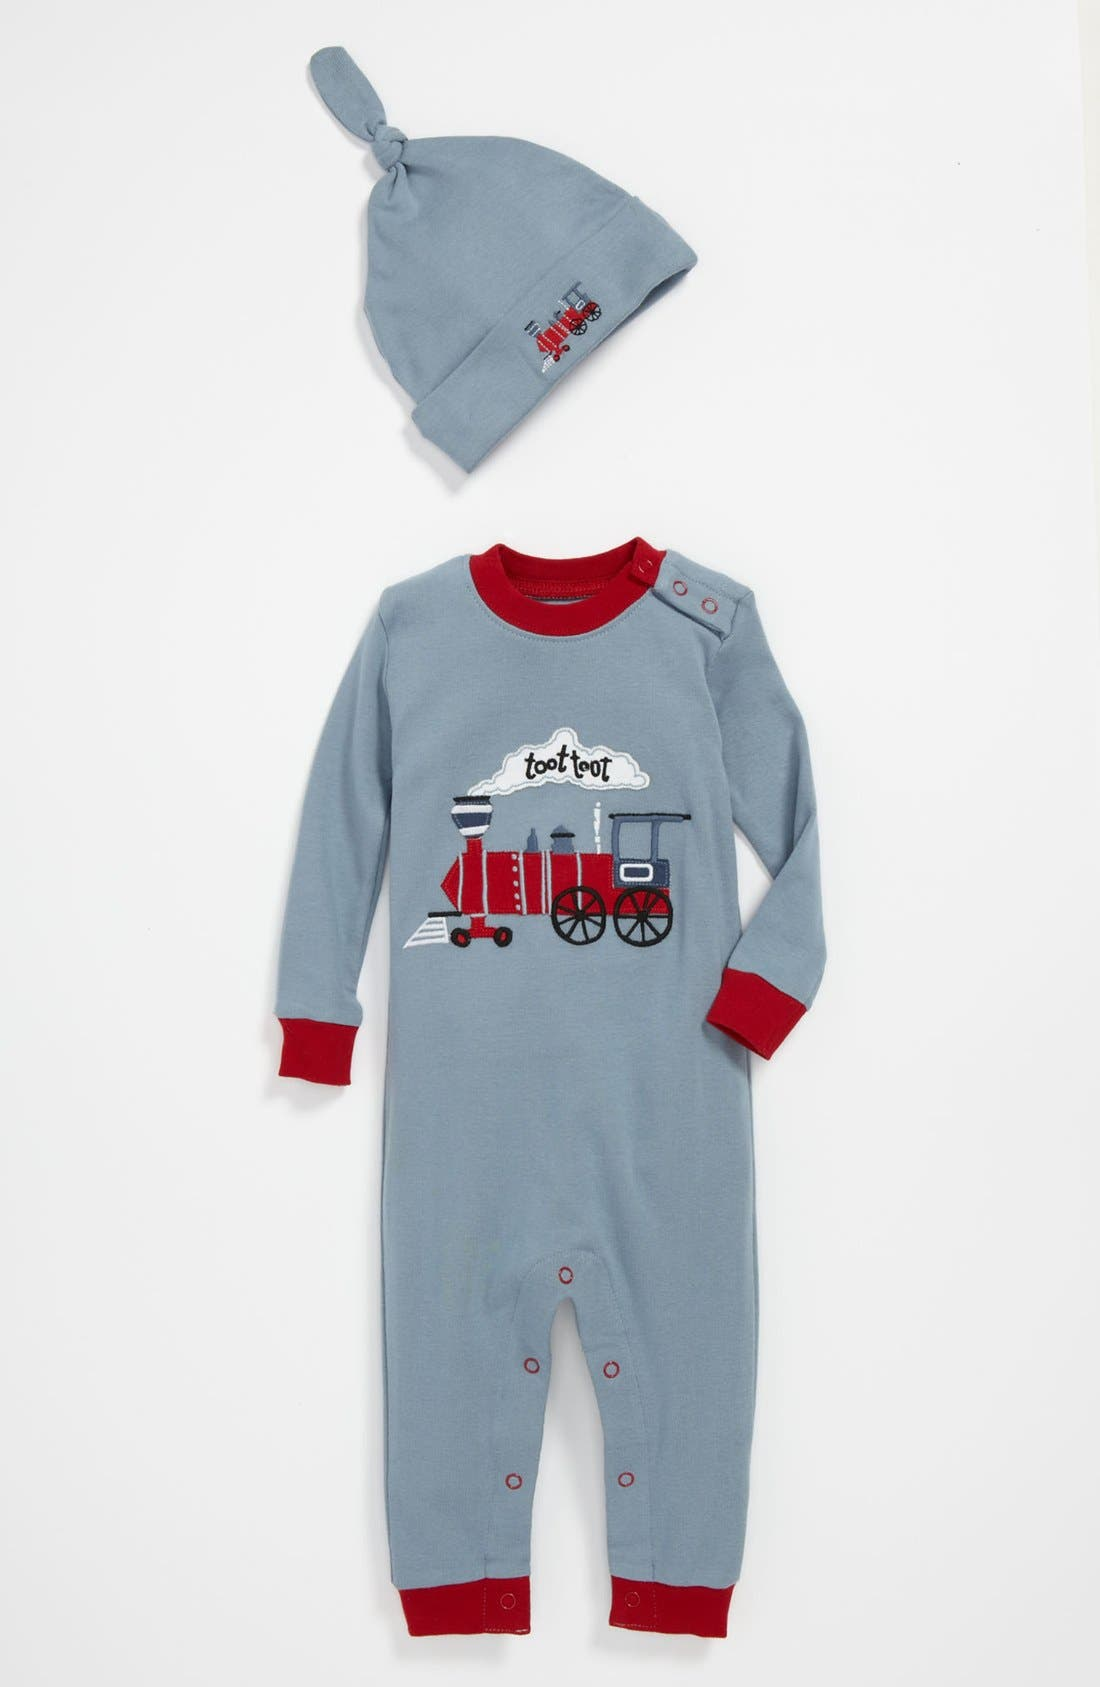 Alternate Image 1 Selected - Hatley Fitted Romper Pajamas & Hat (Baby)